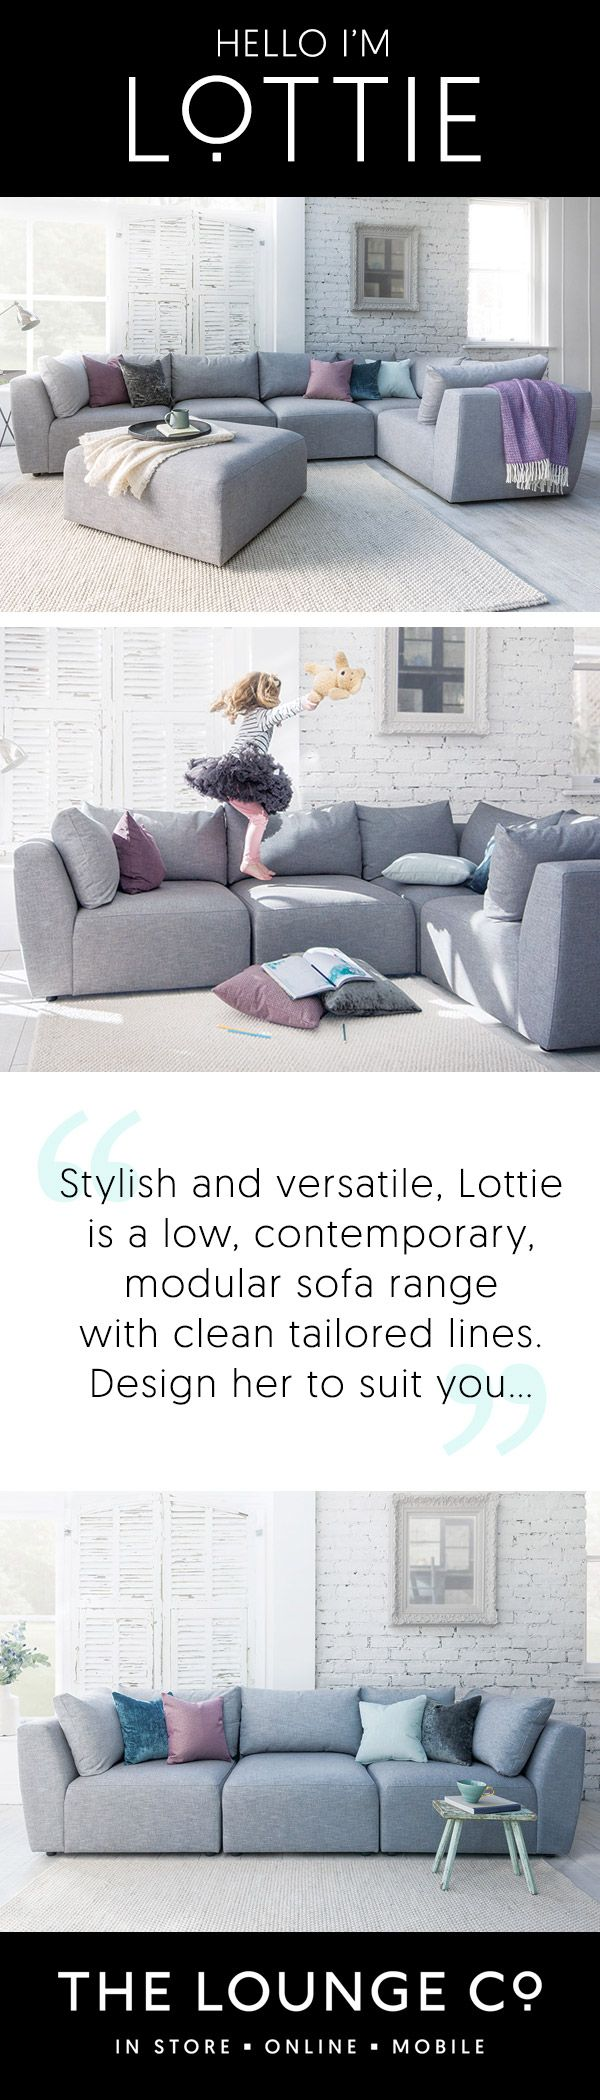 The Lounge Co. - Lottie Modular Sofa Range